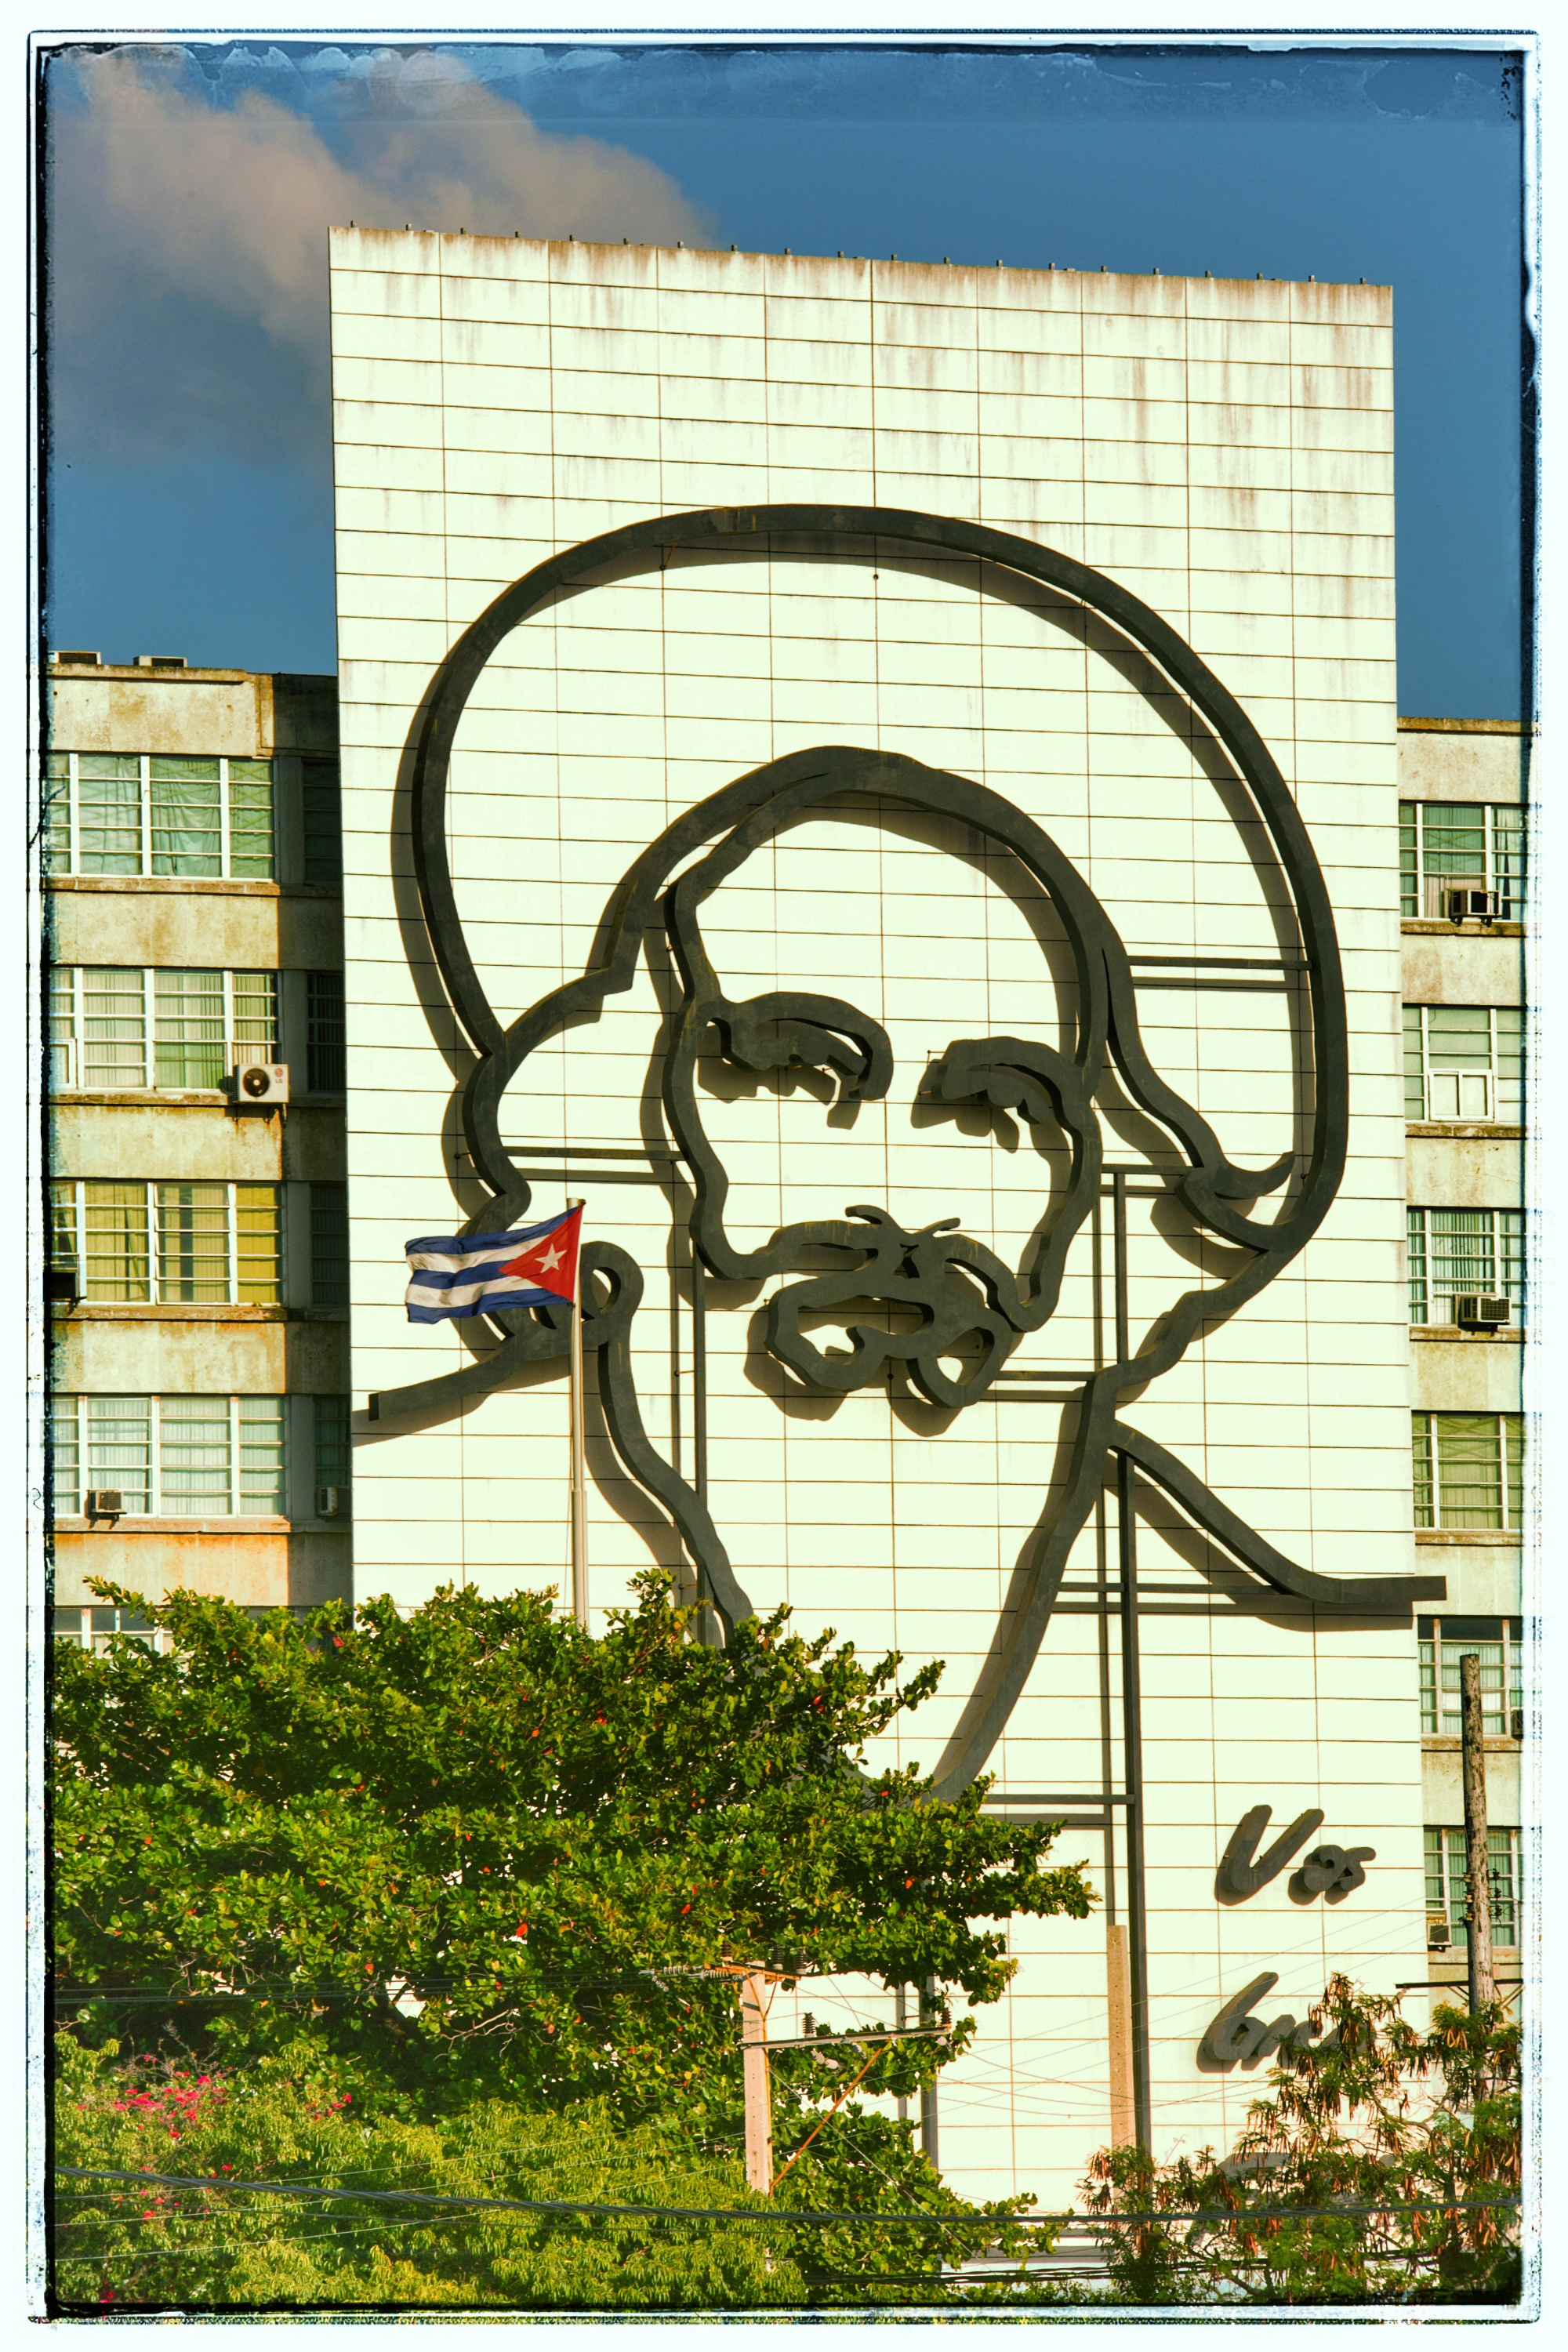 One of the few Fidel images I saw. Che was everywhere, but Fidel and Raul pretty much absent.